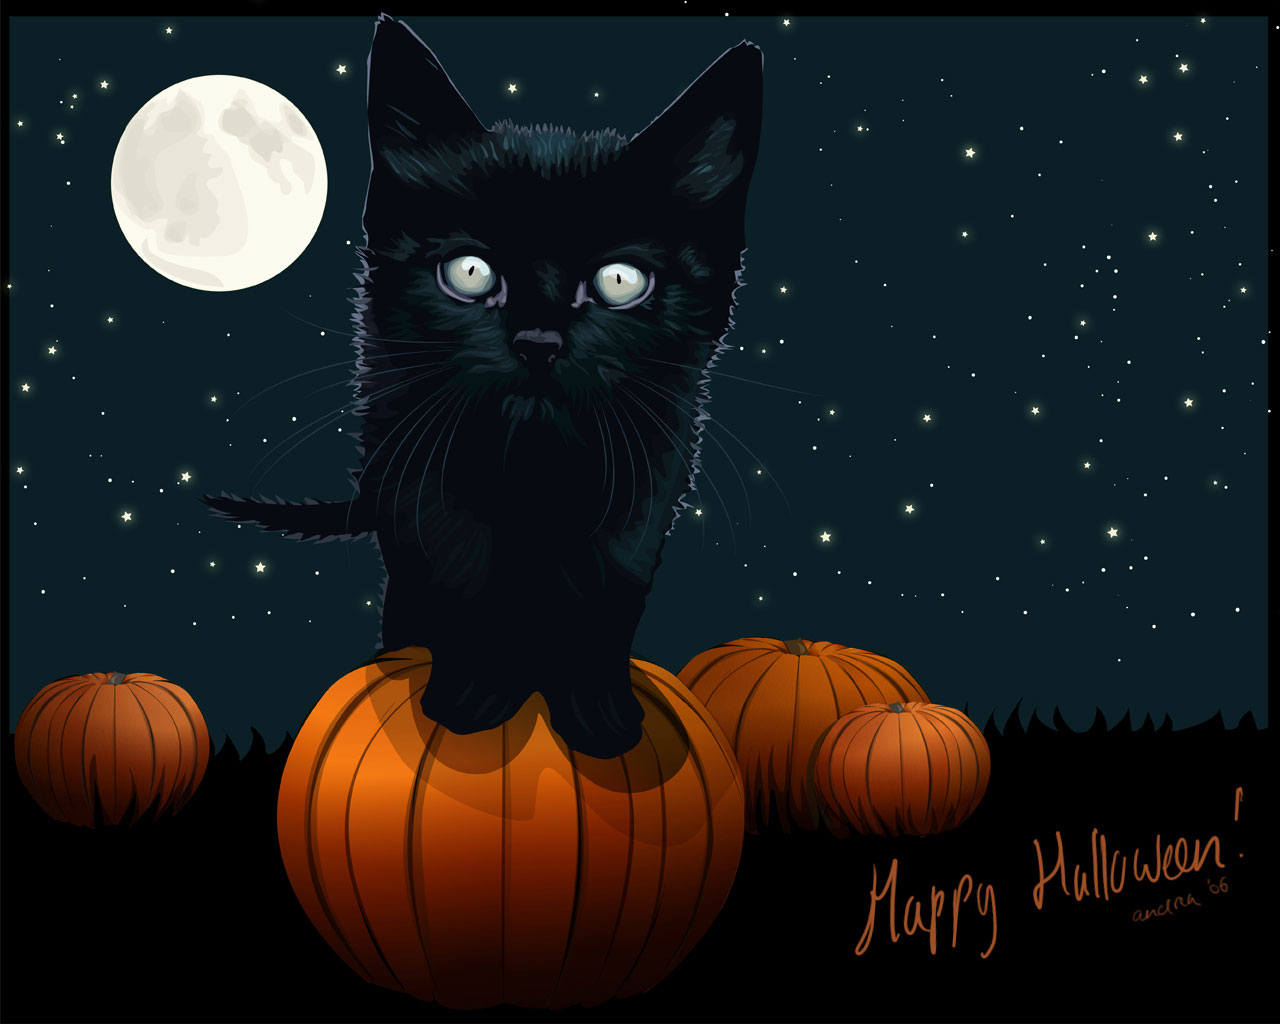 Free Scary Halloween Backgrounds \u0026 Wallpaper Collection 2014